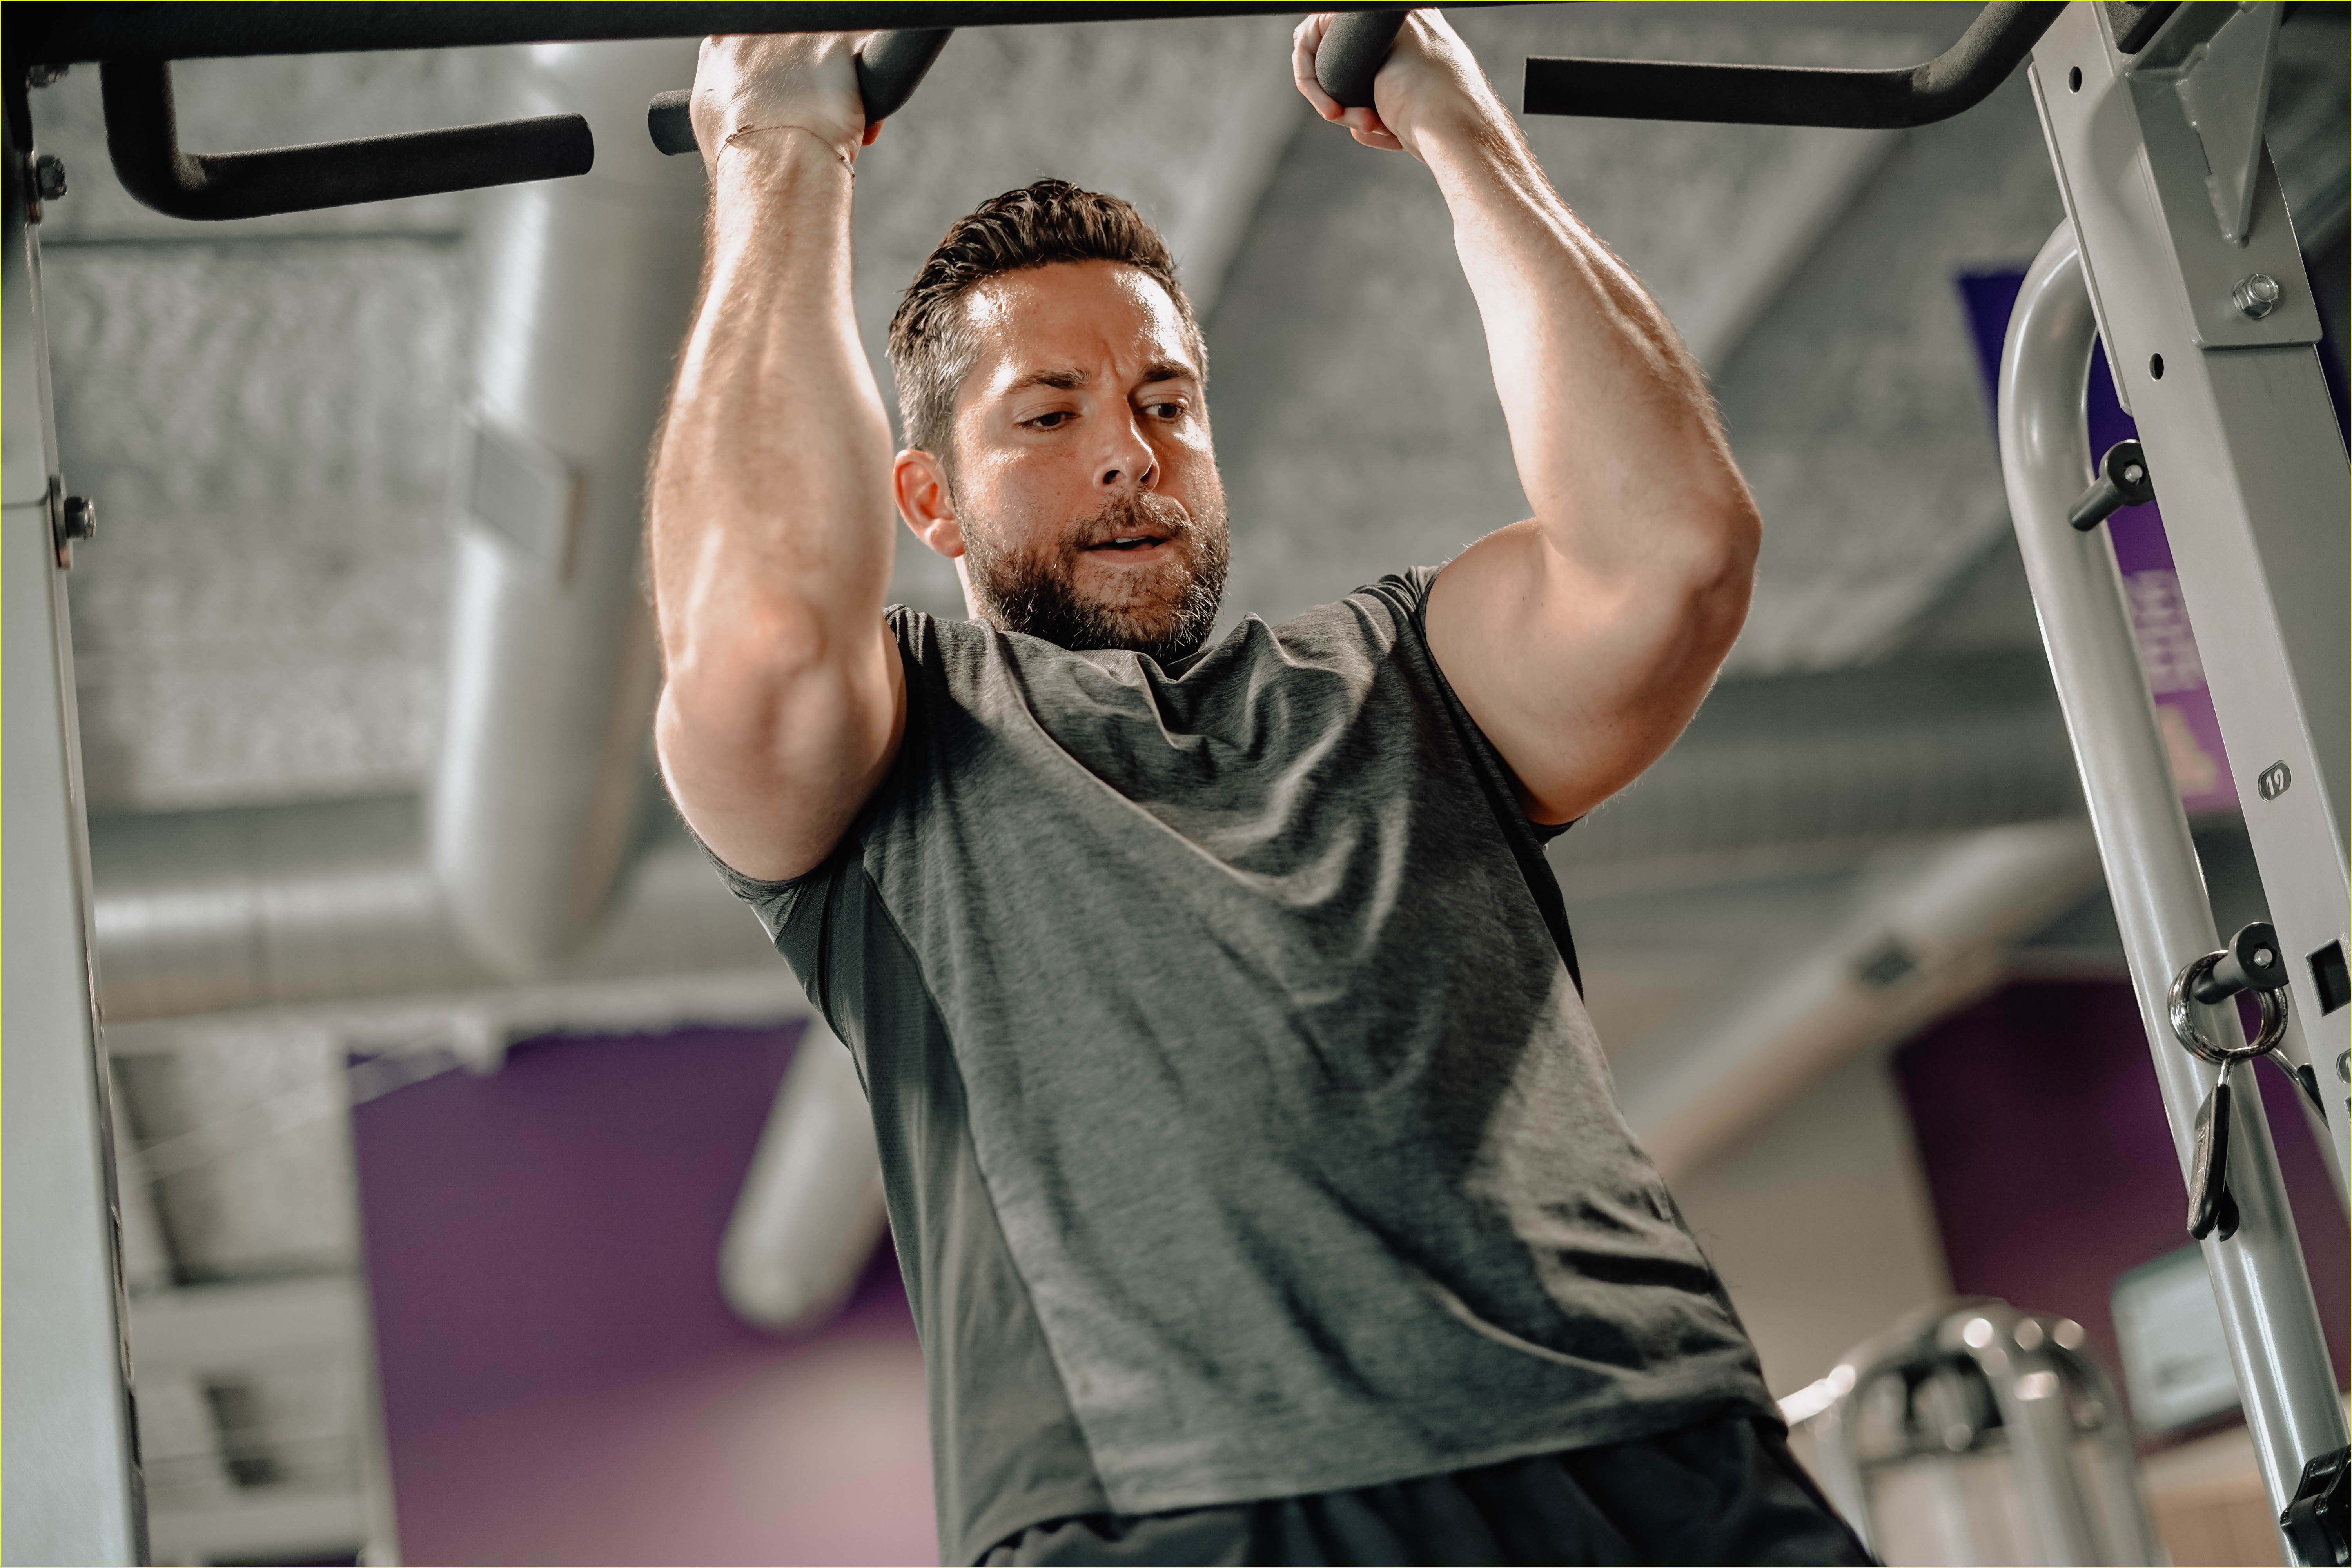 zachary levi bares massive biceps promoting flow supplements company 01